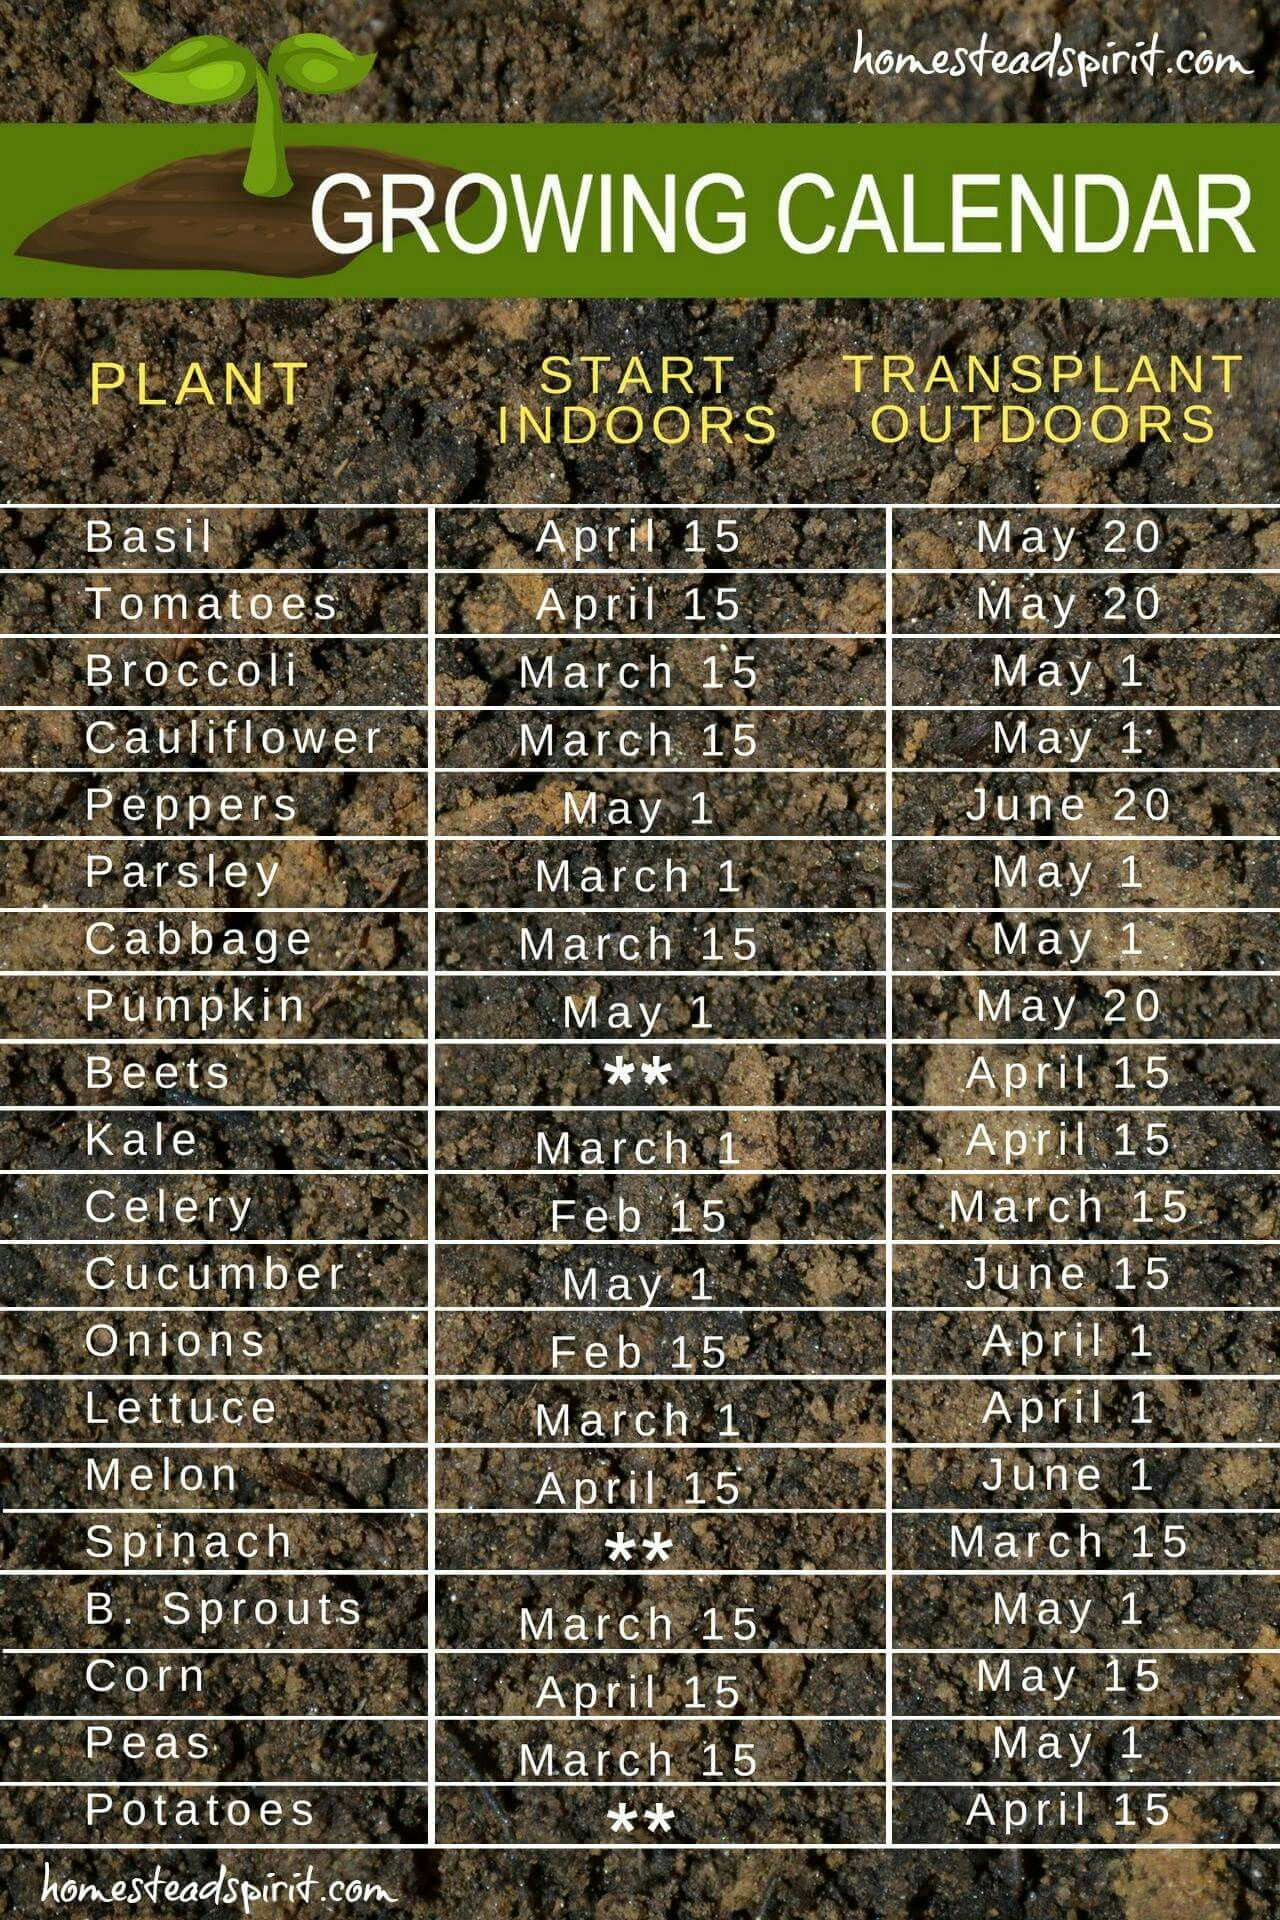 Growing Calendar For Starting Seeds Indoors And Transplanting